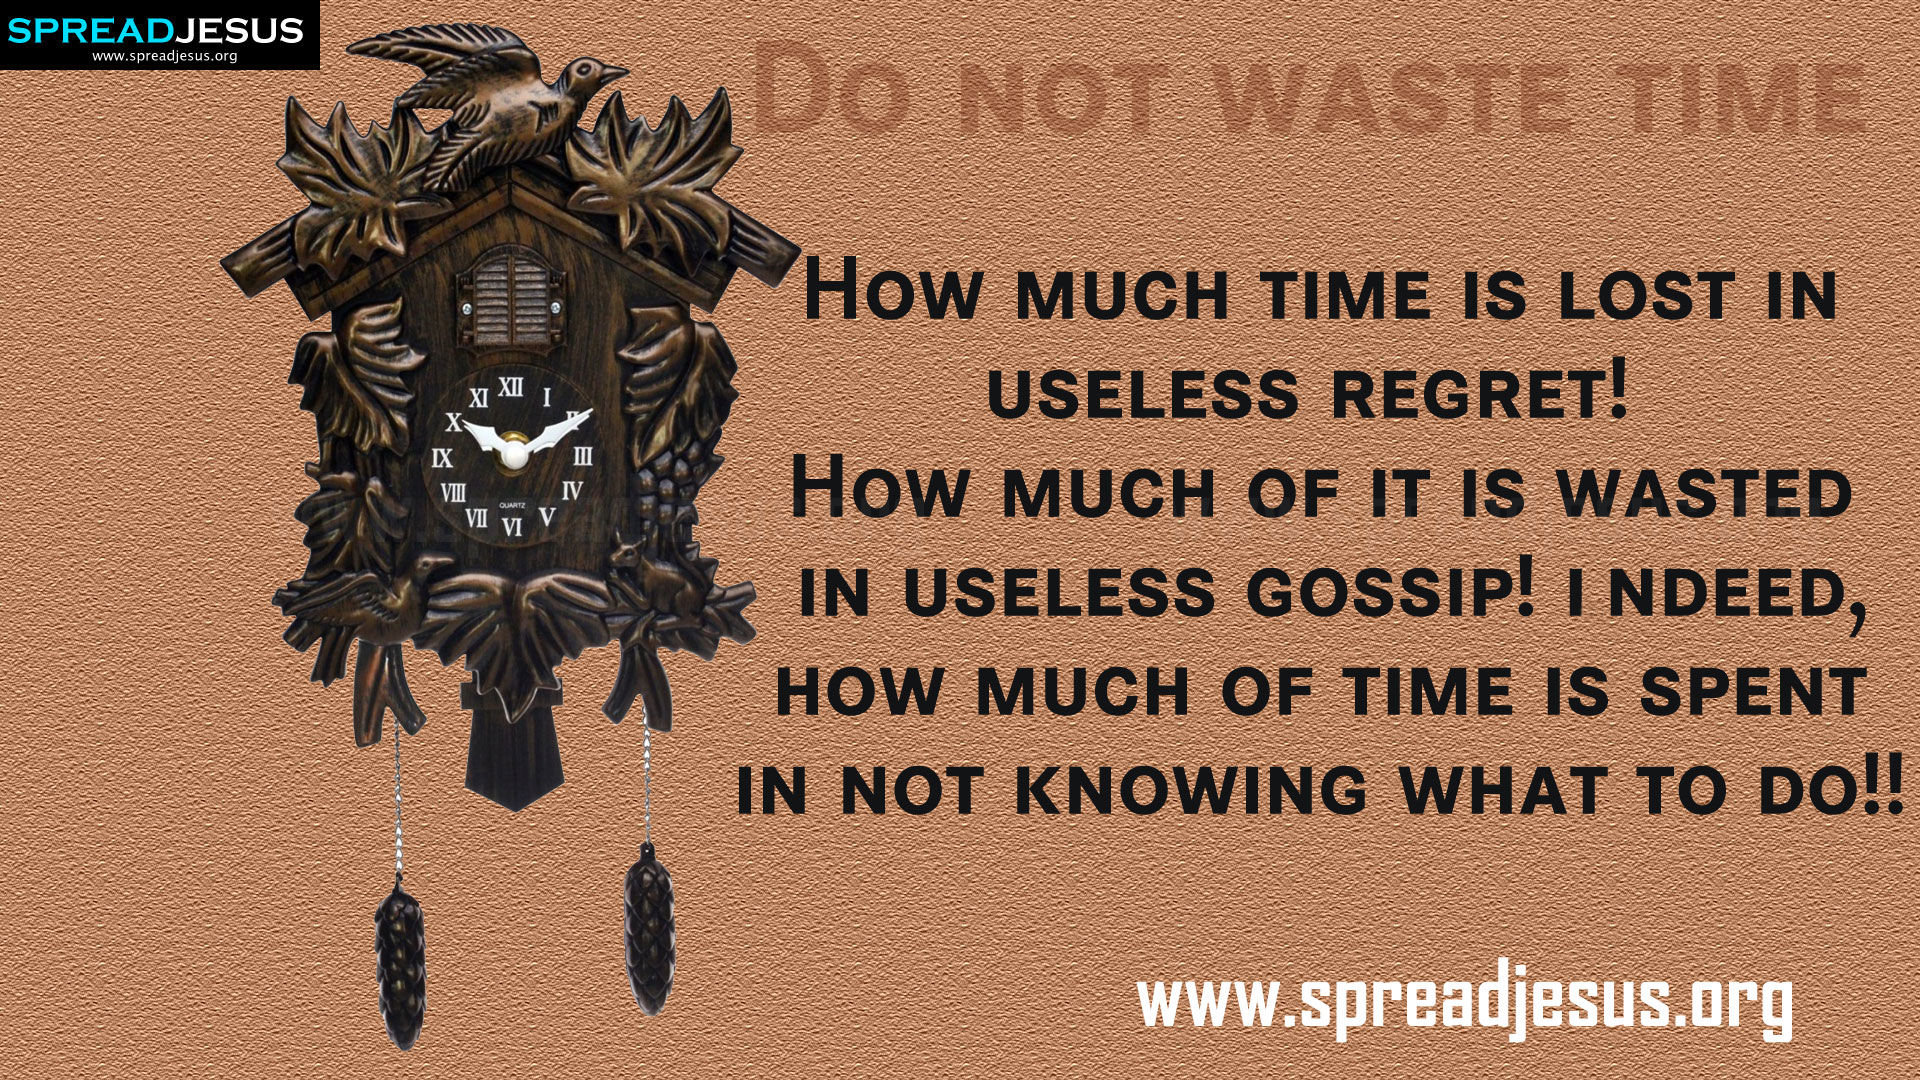 TIME MANAGEMENT QUOTES HD-WALLPAPERS FREE DOWNLOAD Do not waste time — How much time is lost in useless regret!